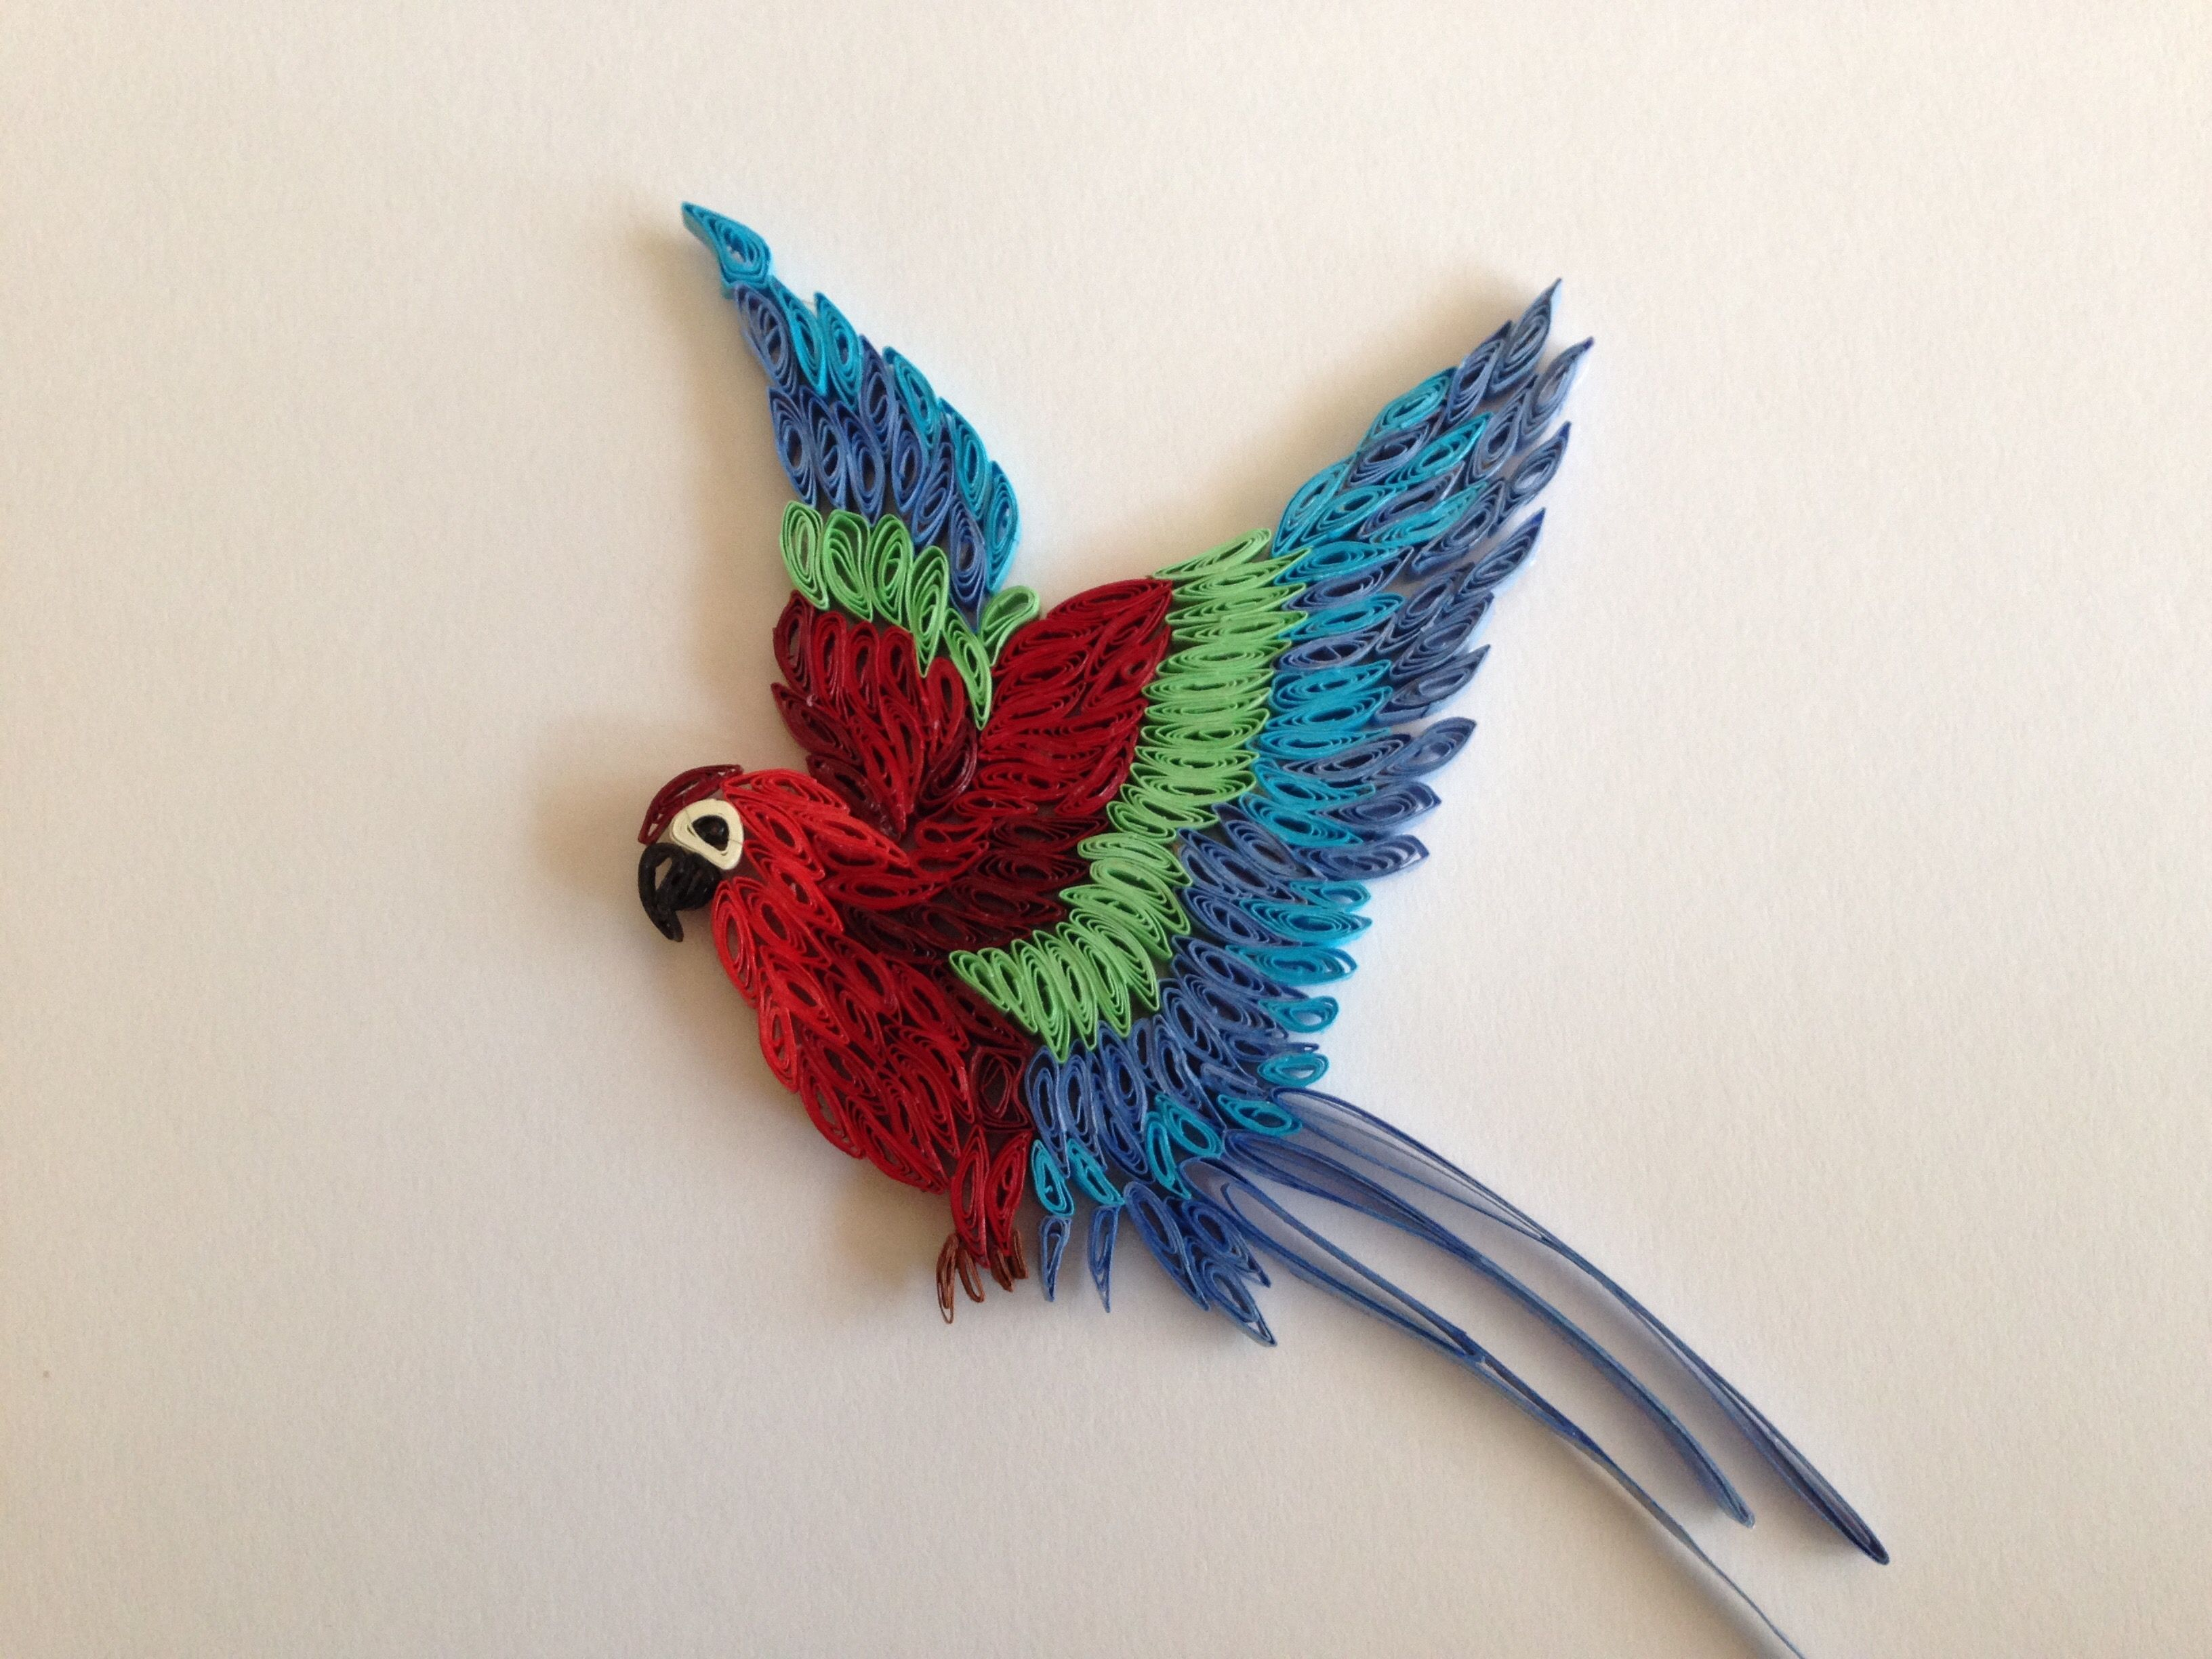 quilling designs birds images galleries with a bite. Black Bedroom Furniture Sets. Home Design Ideas